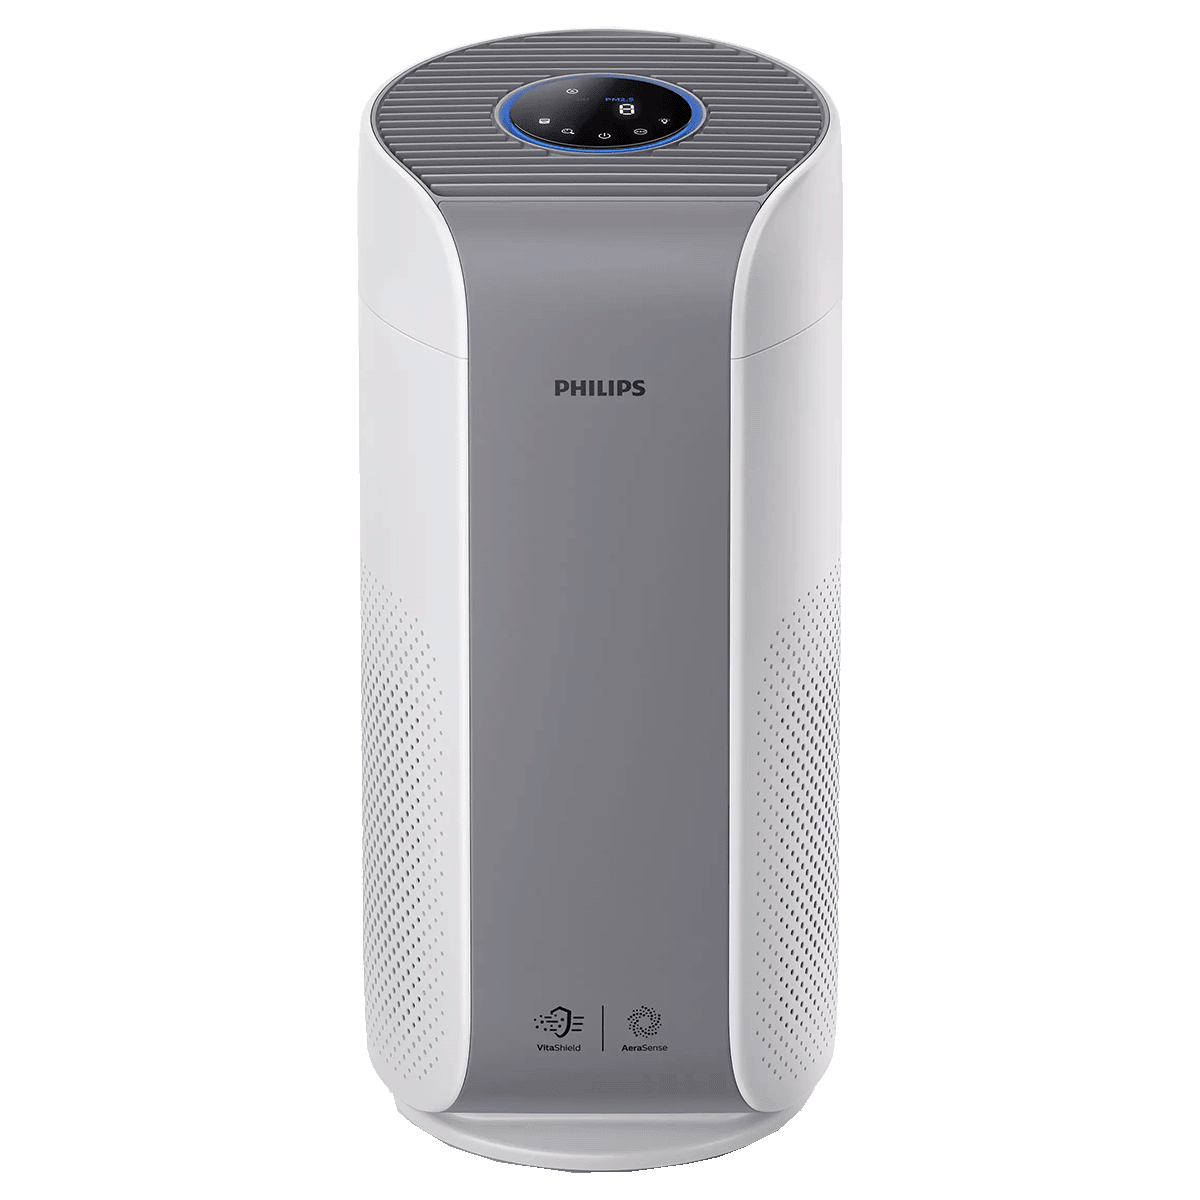 Philips Vitashield IPS and AeraSense Technology Air Purifier (Multi Touch, AC1758/63, Mid Grey and White)